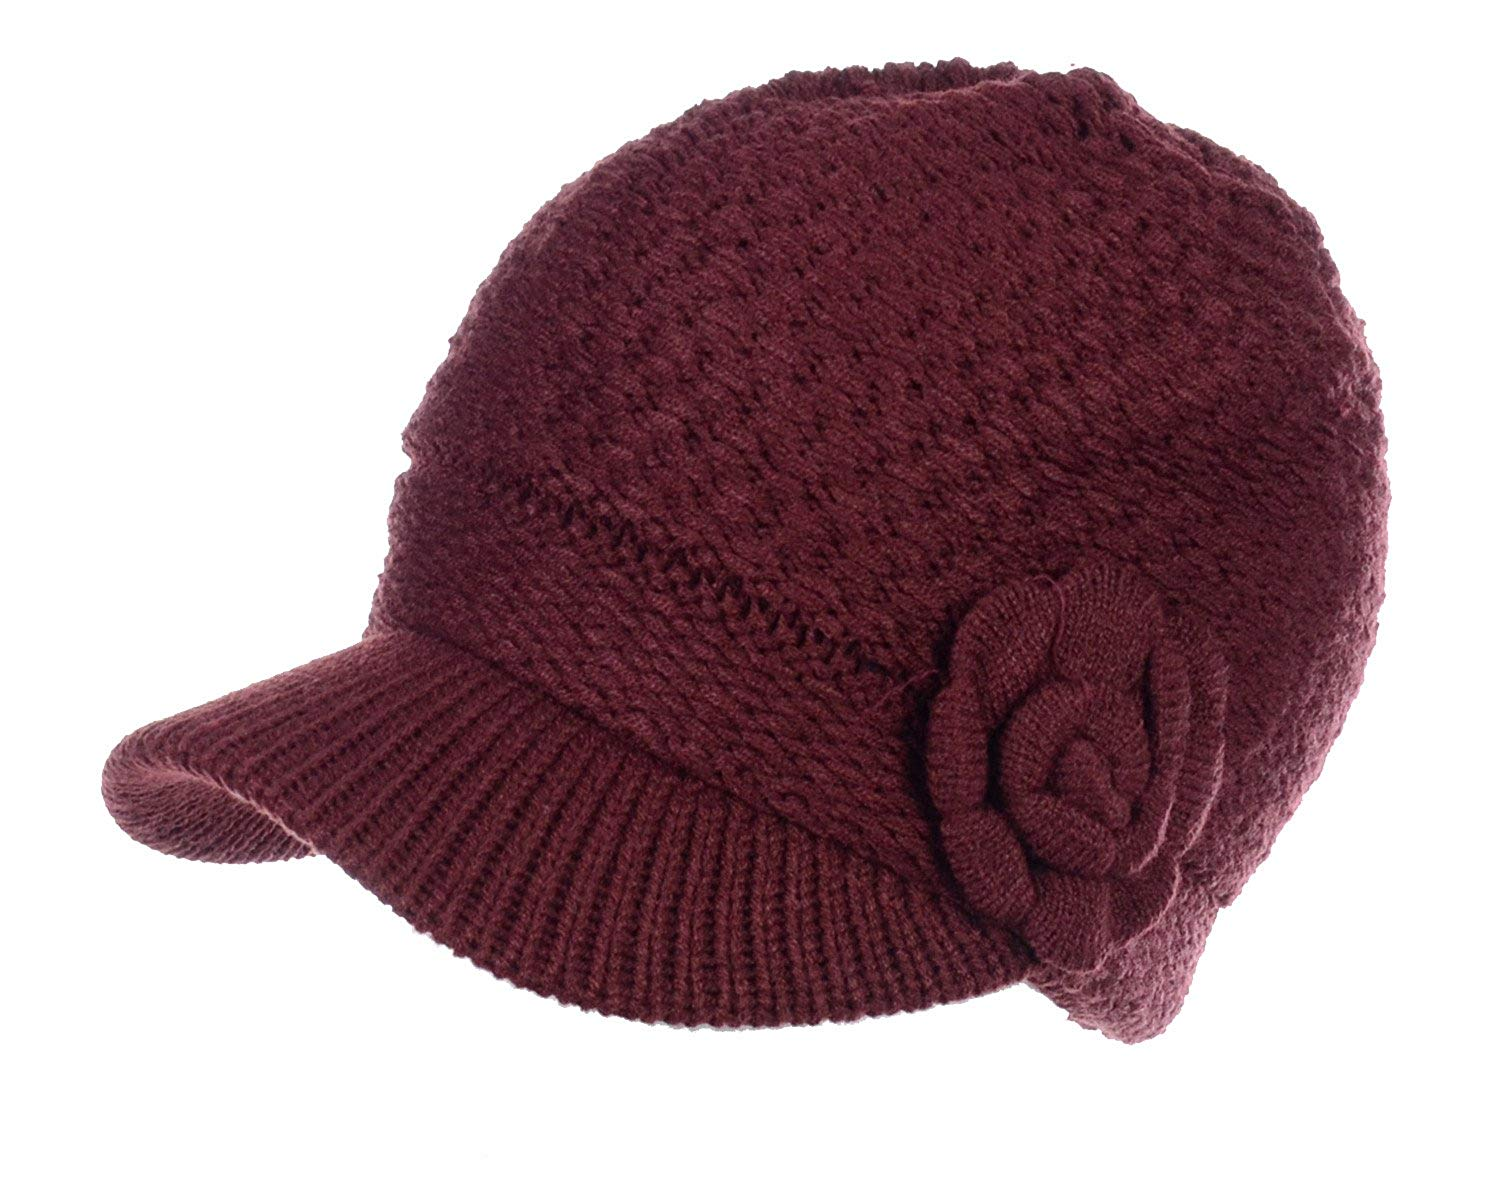 a91d7526b9f Get Quotations · Be Your Own Style BYOS Womens Winter Chic Cable Warm Fleece  Lined Crochet Knit Hat W